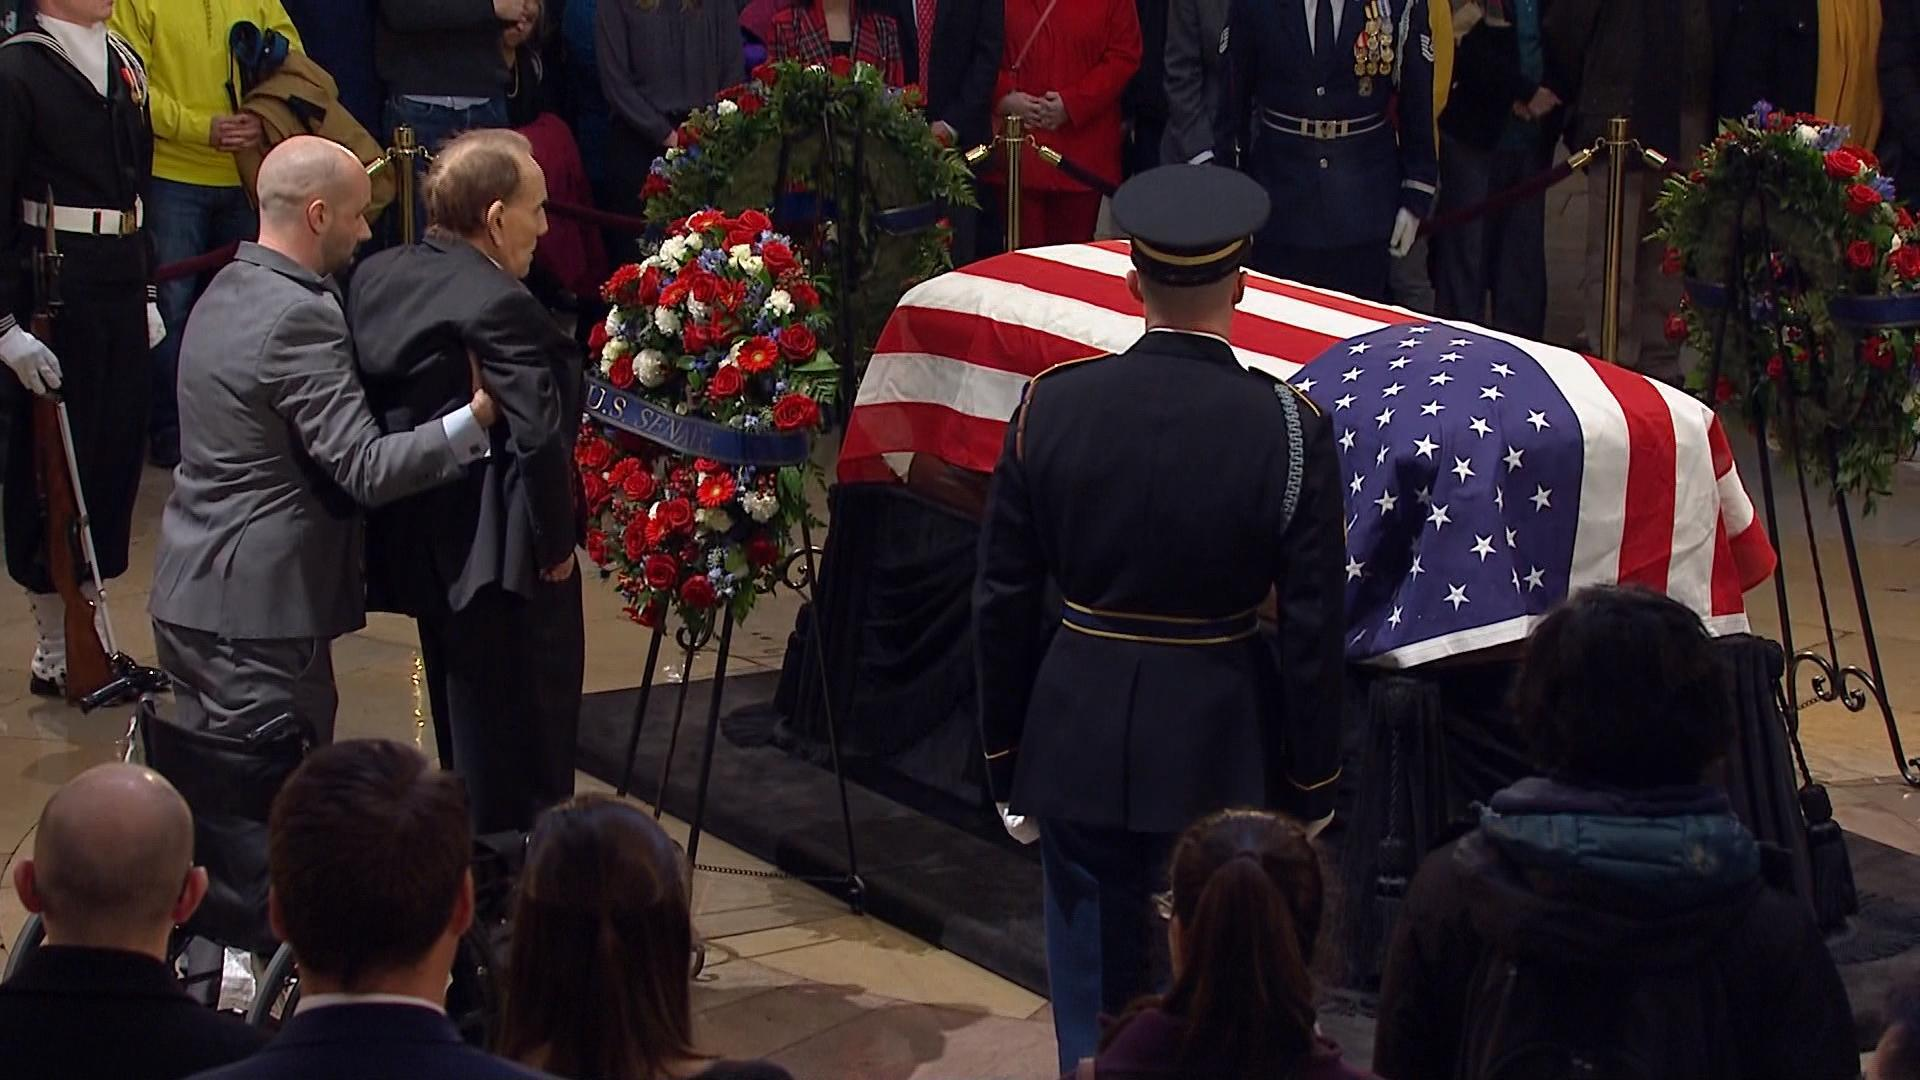 Bush and Dole: A political rivalry for the ages. And then that final salute.